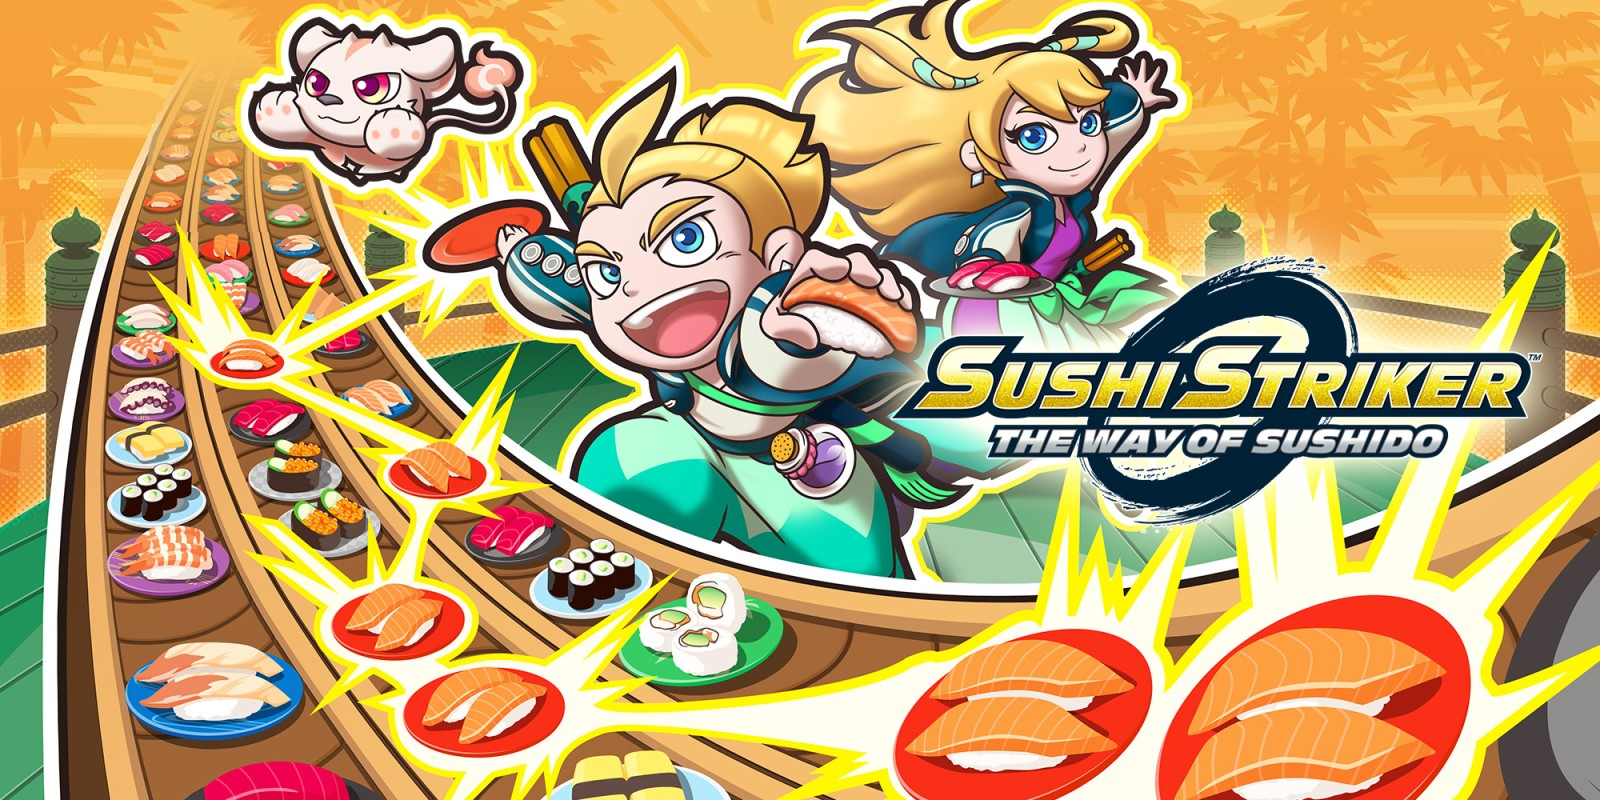 Sushi Striker: The Way of Sushido demo available